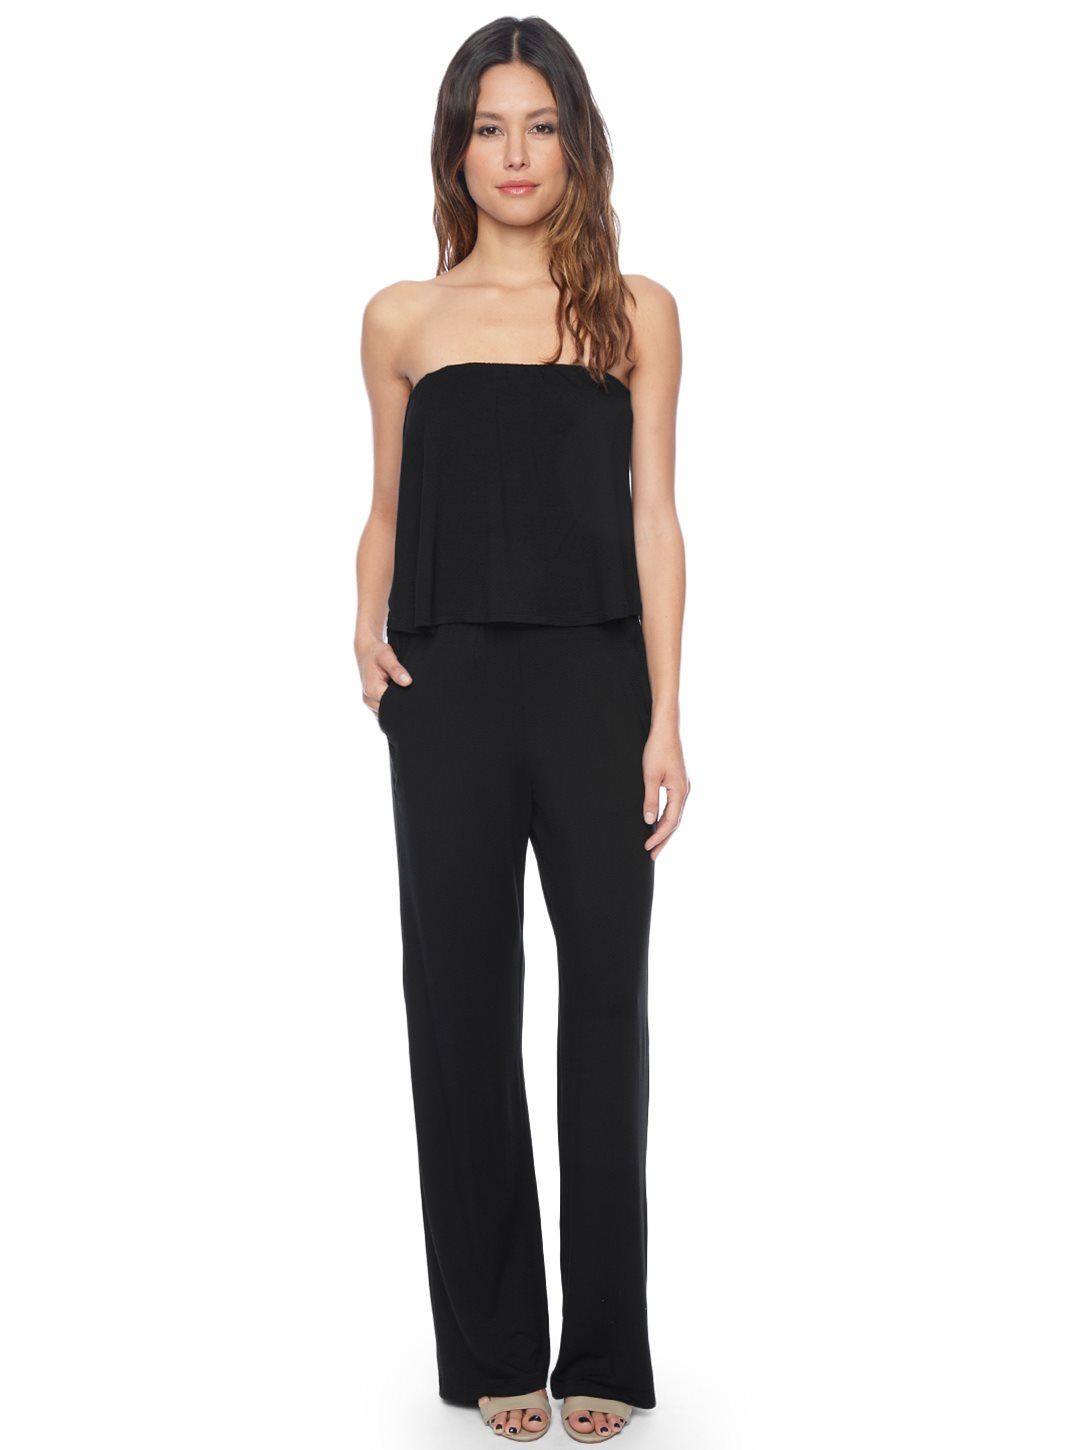 Ella Moss Bella Strapless Jumpsuit in Black | Lyst